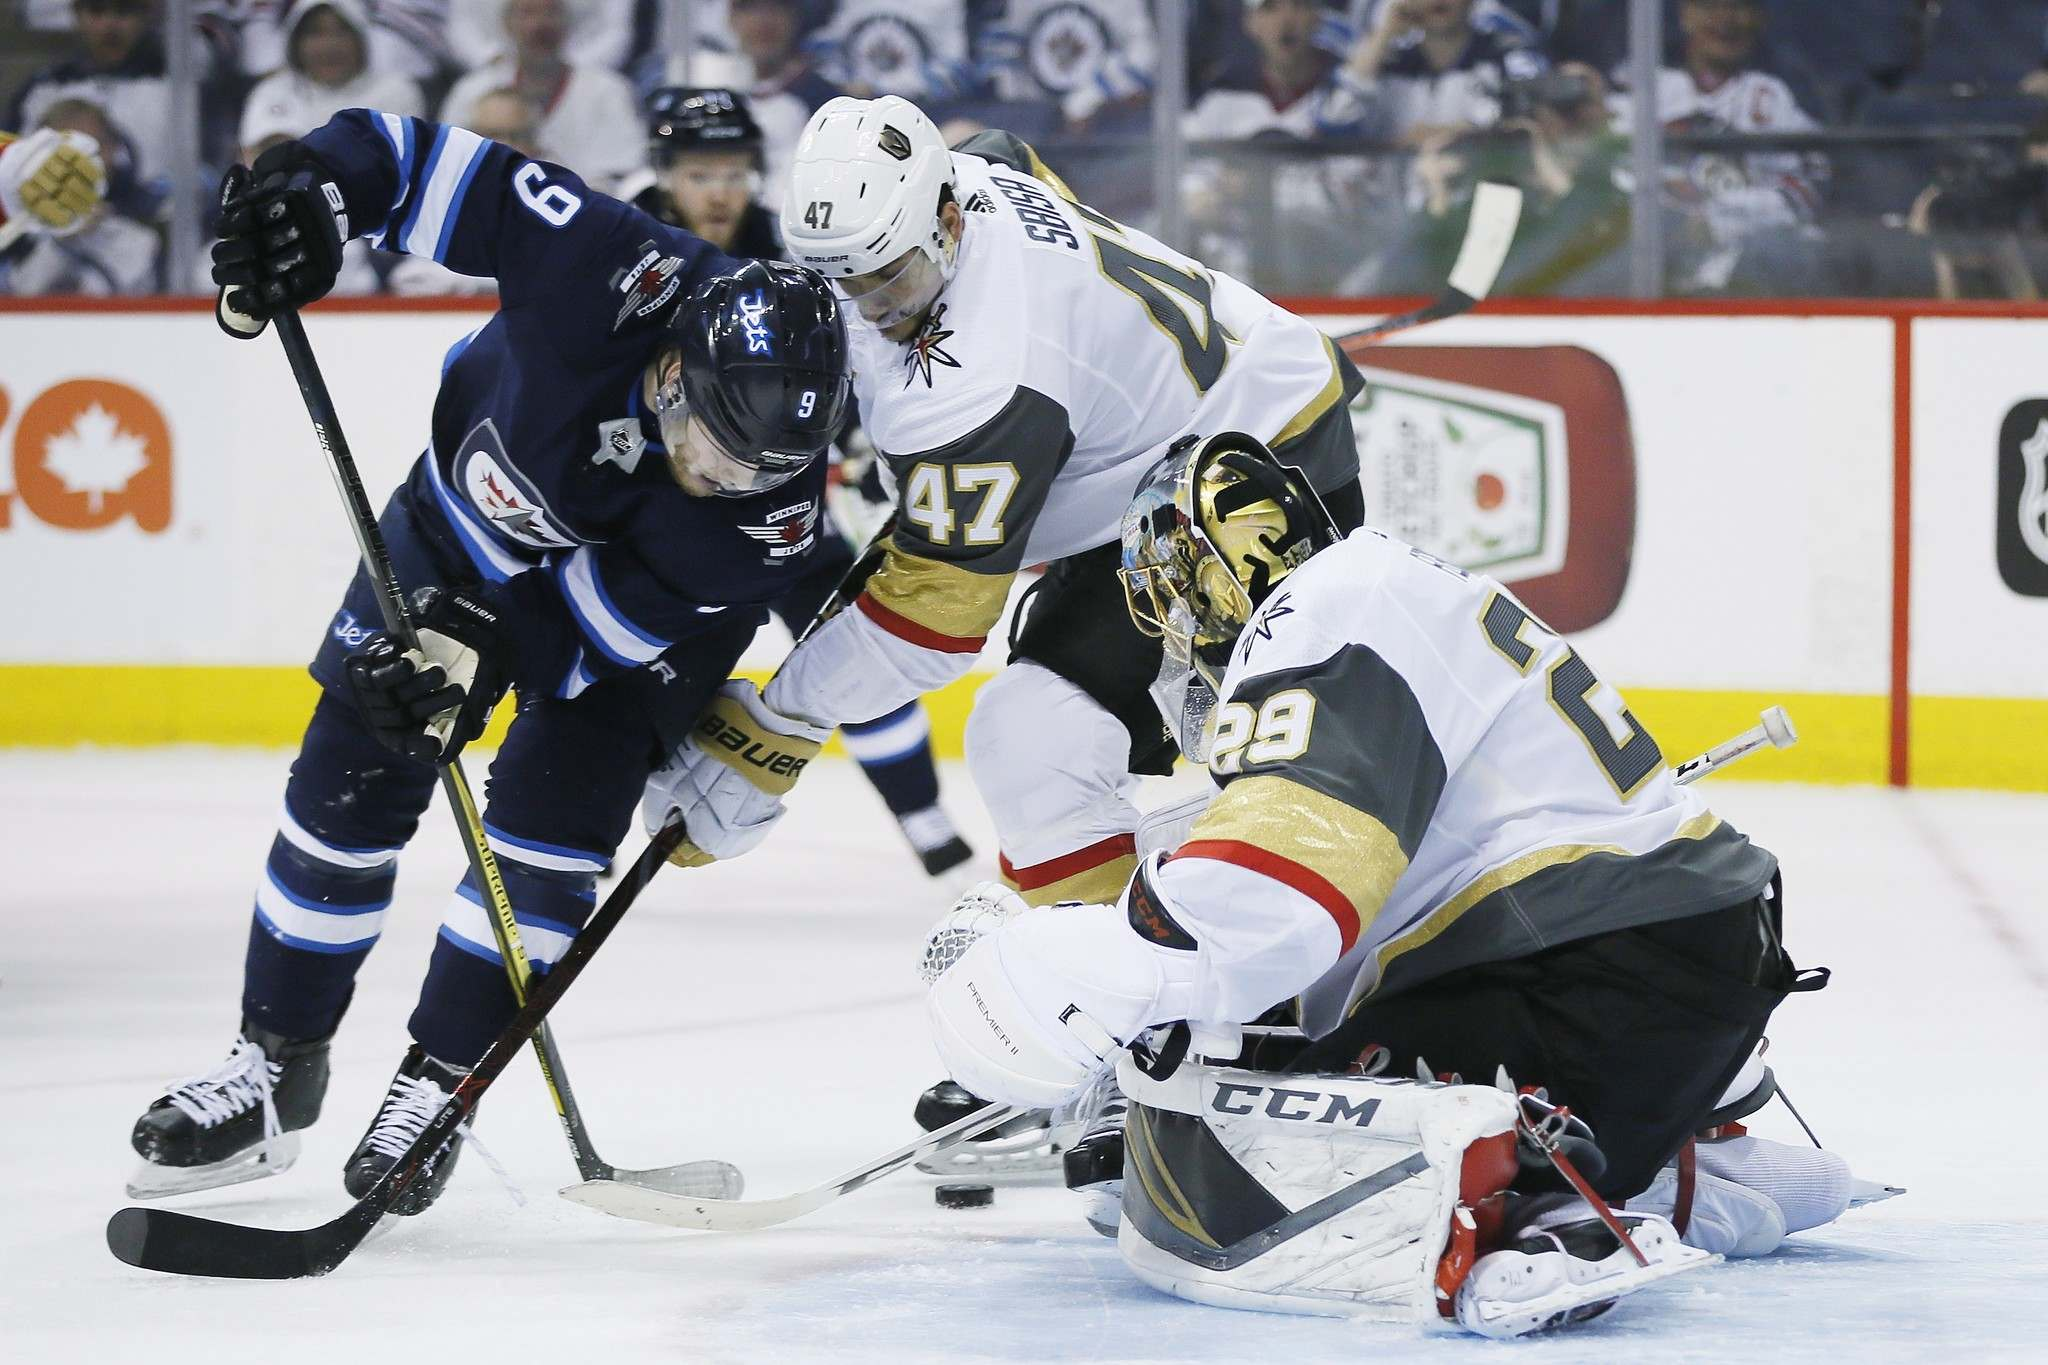 Vegas Golden Knights' goaltender Marc-Andre Fleury (29) knocks the puck away from Winnipeg Jets' Andrew Copp (9) as Knights' Luca Sbisa (47) defends during second period of game one action in the NHL Western Conference Final in Winnipeg on Saturday, May 12, 2018. THE CANADIAN PRESS/John Woods</p>